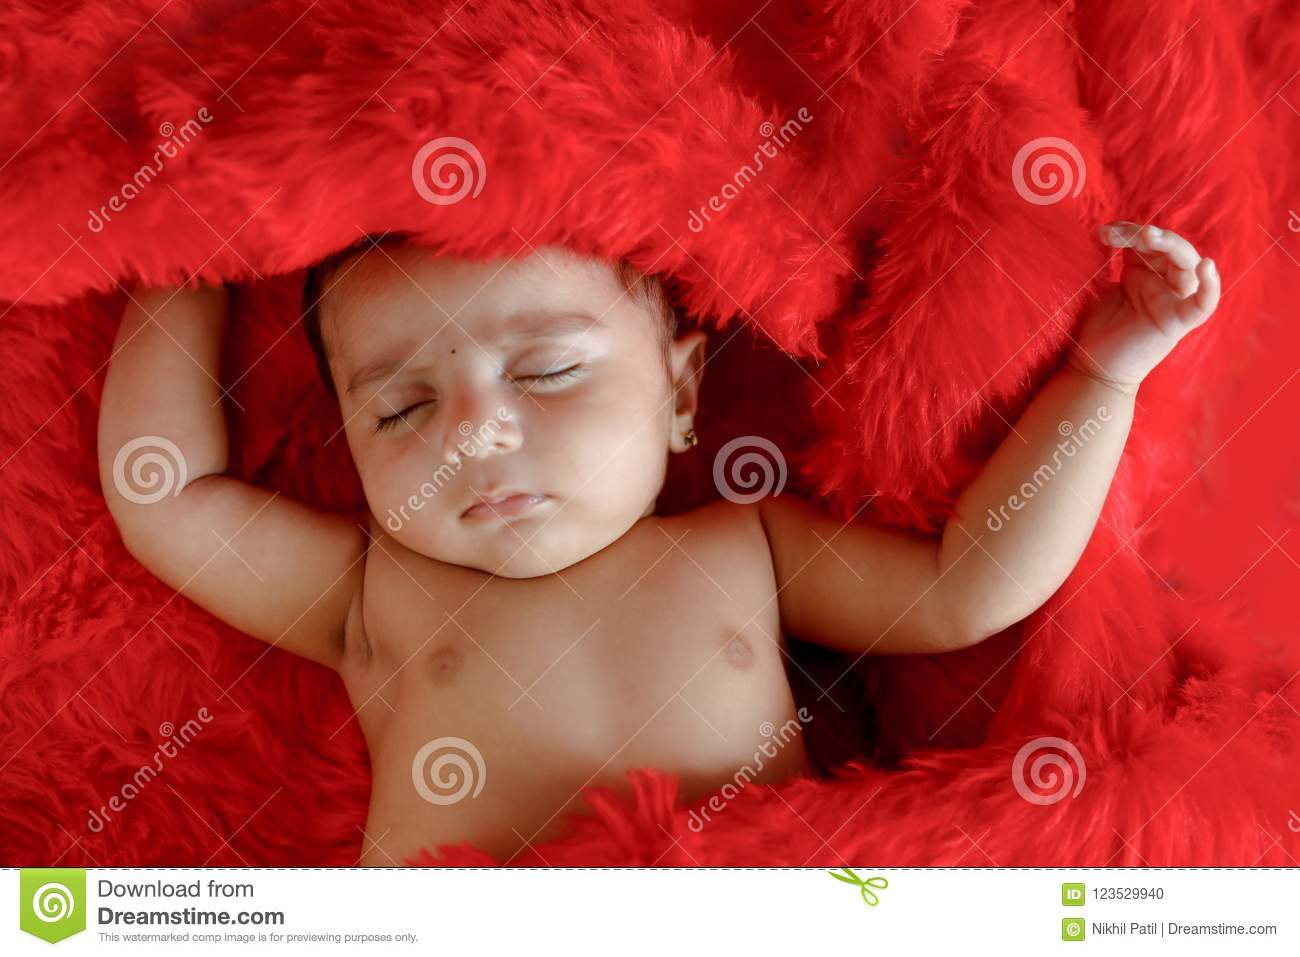 cute indian baby girl sleeping on bed stock photo - image of face